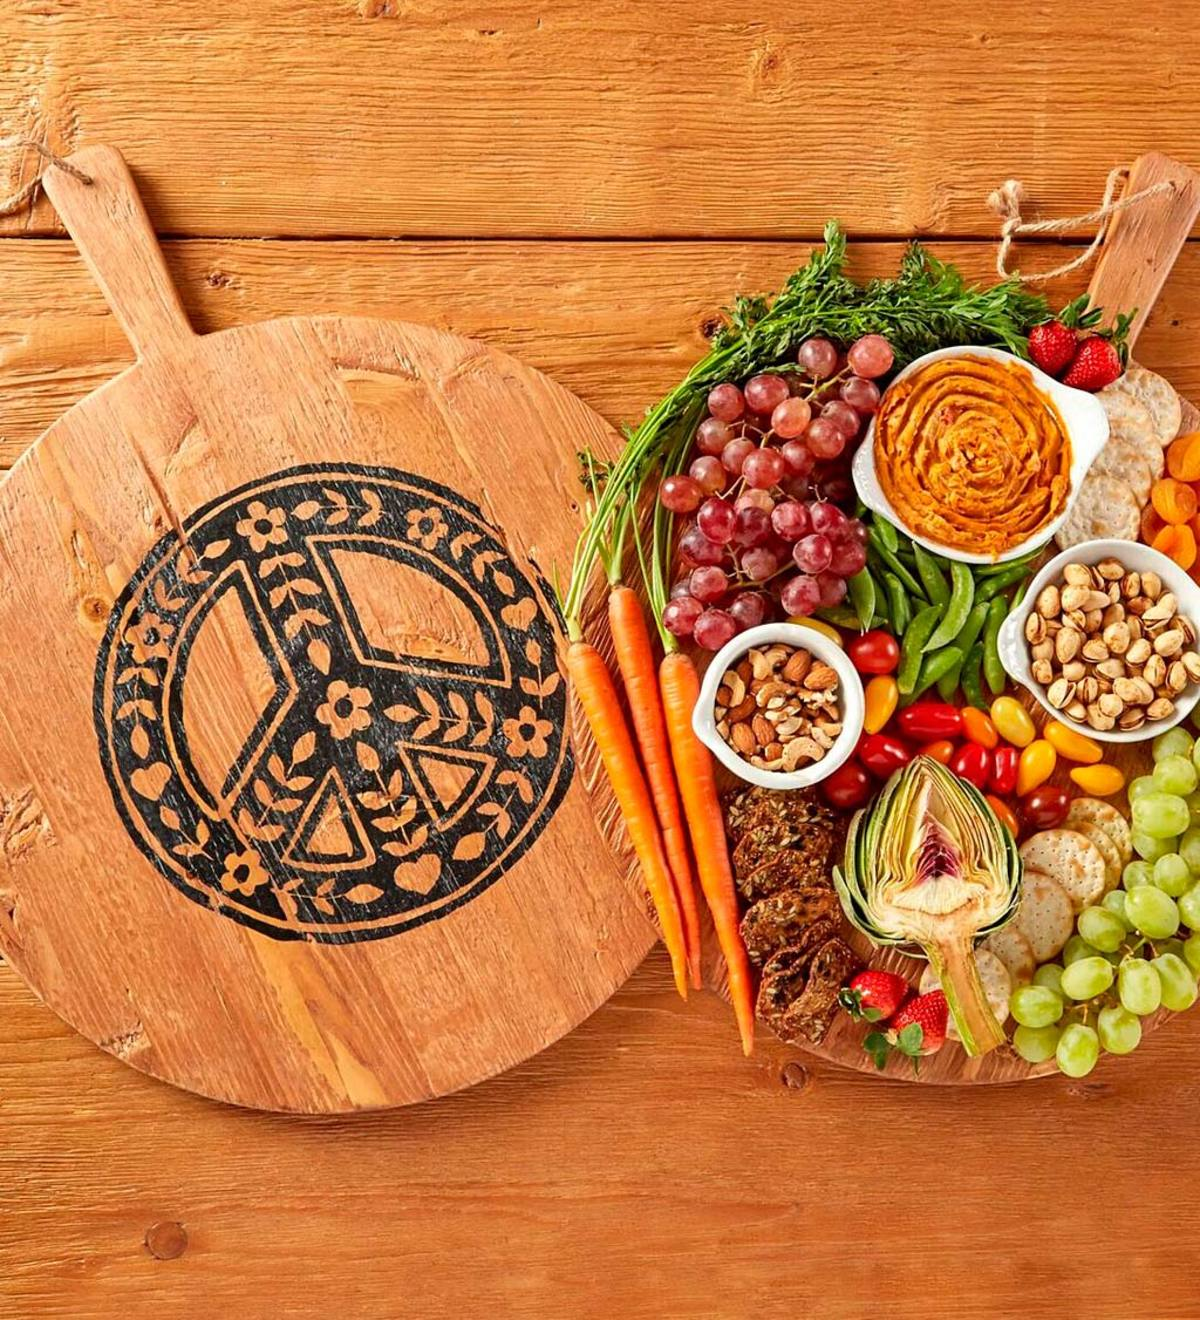 Peace Sign Serving Board